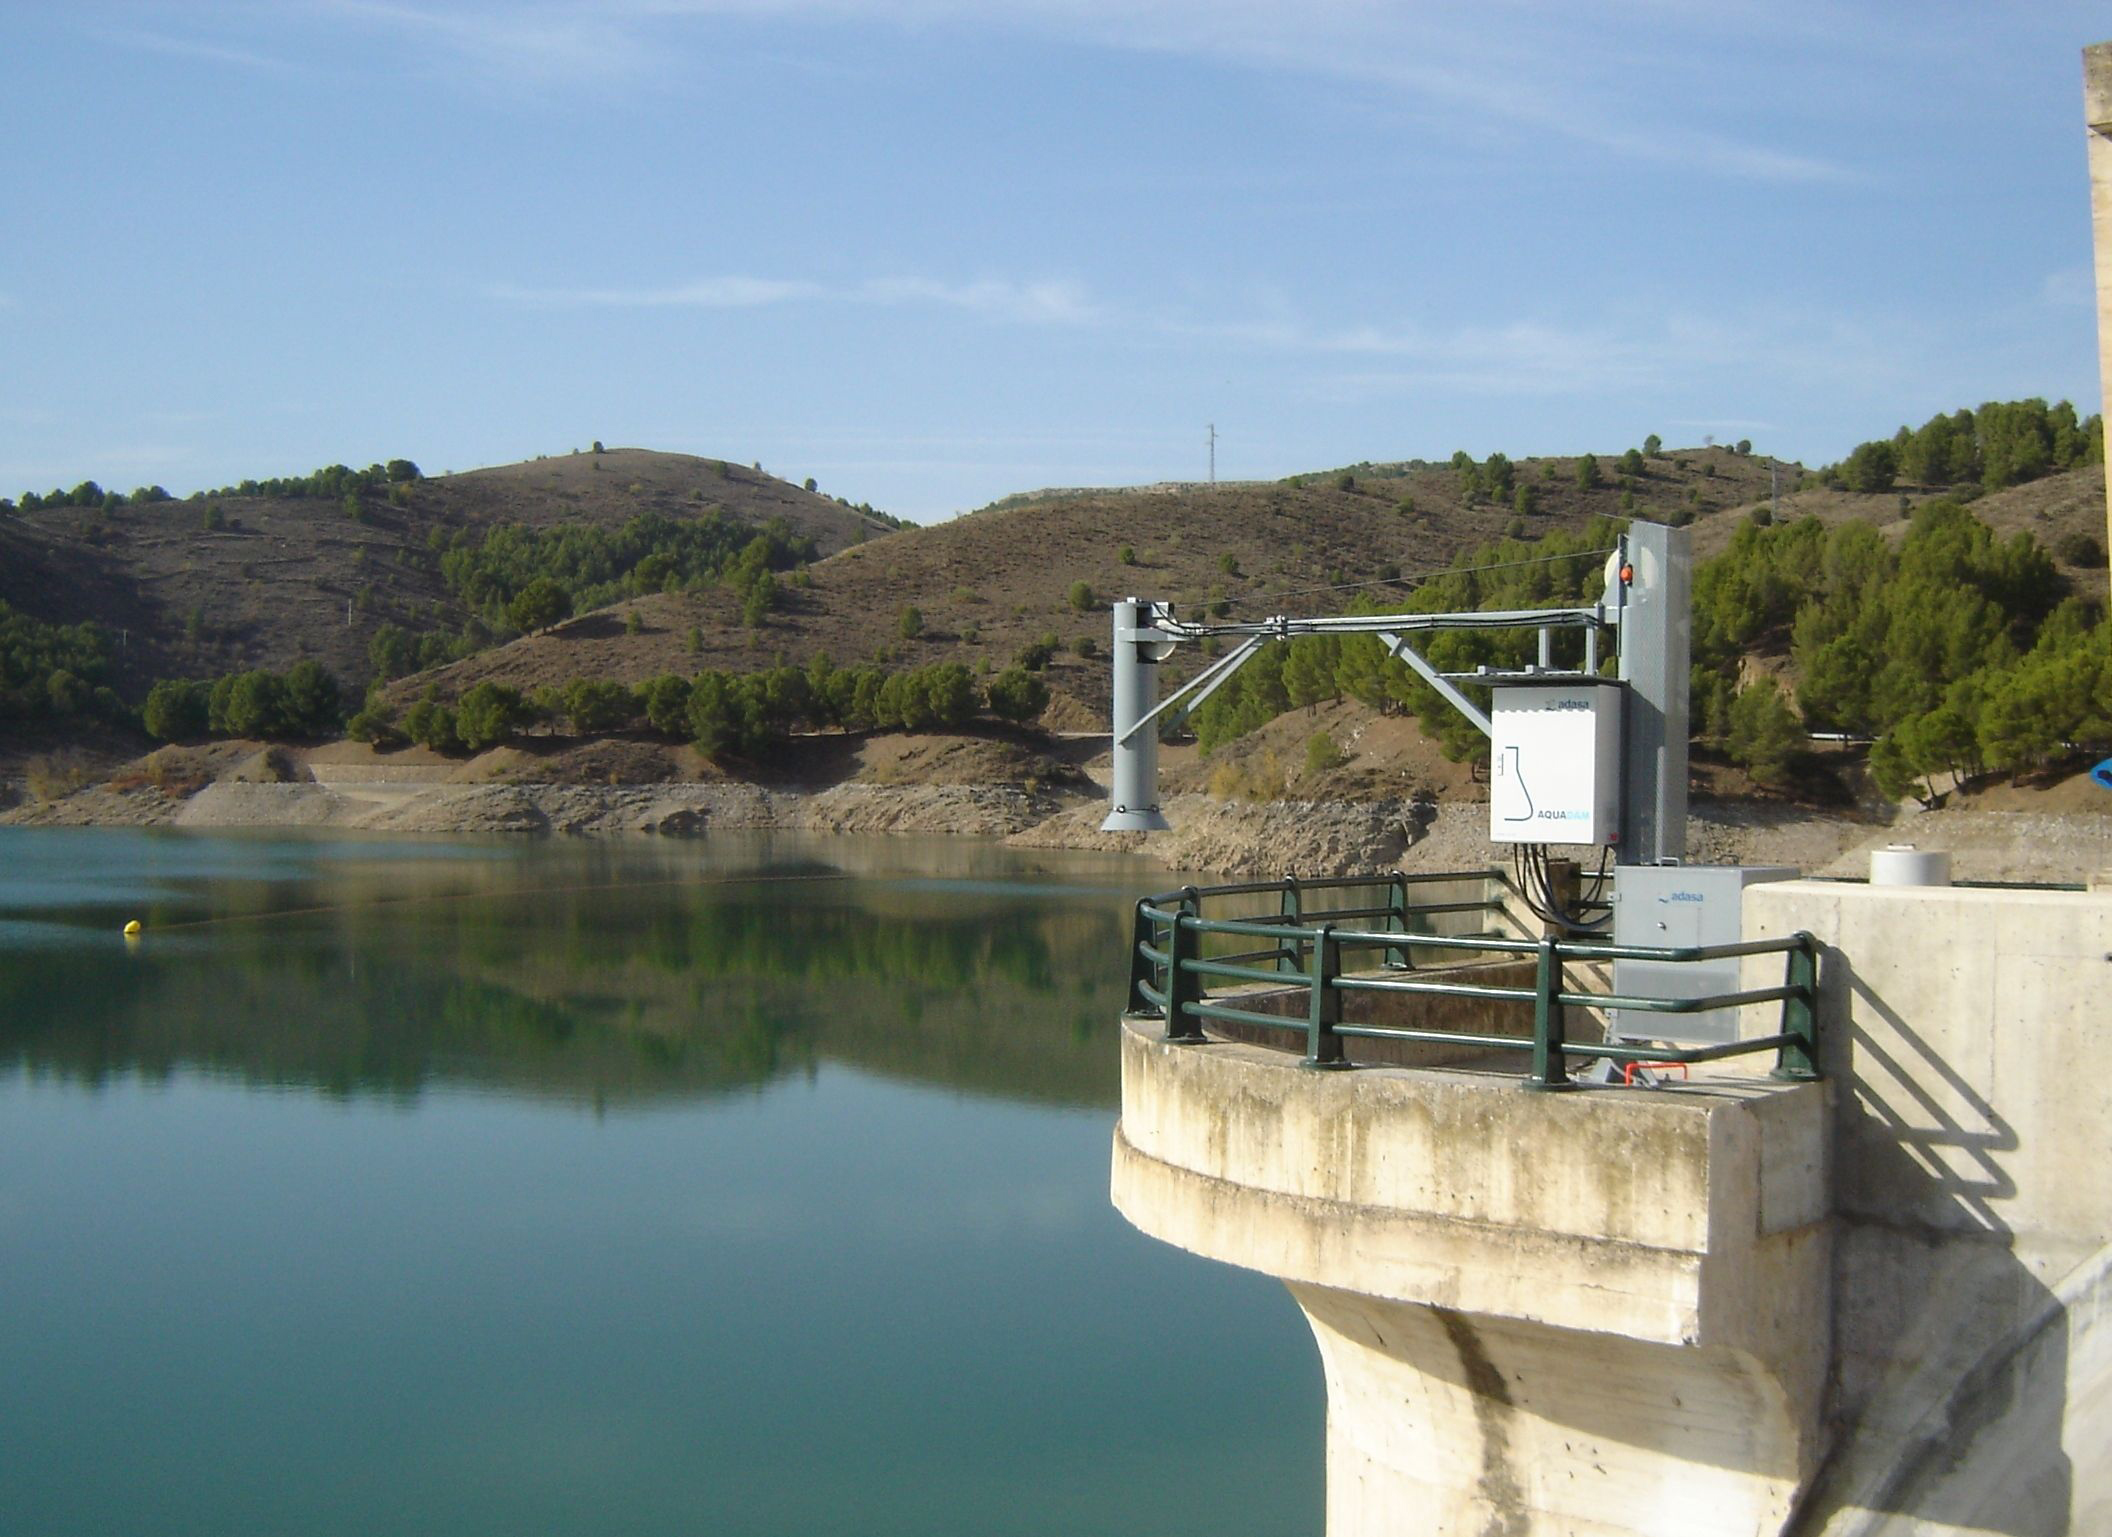 Water quality monitoring and control